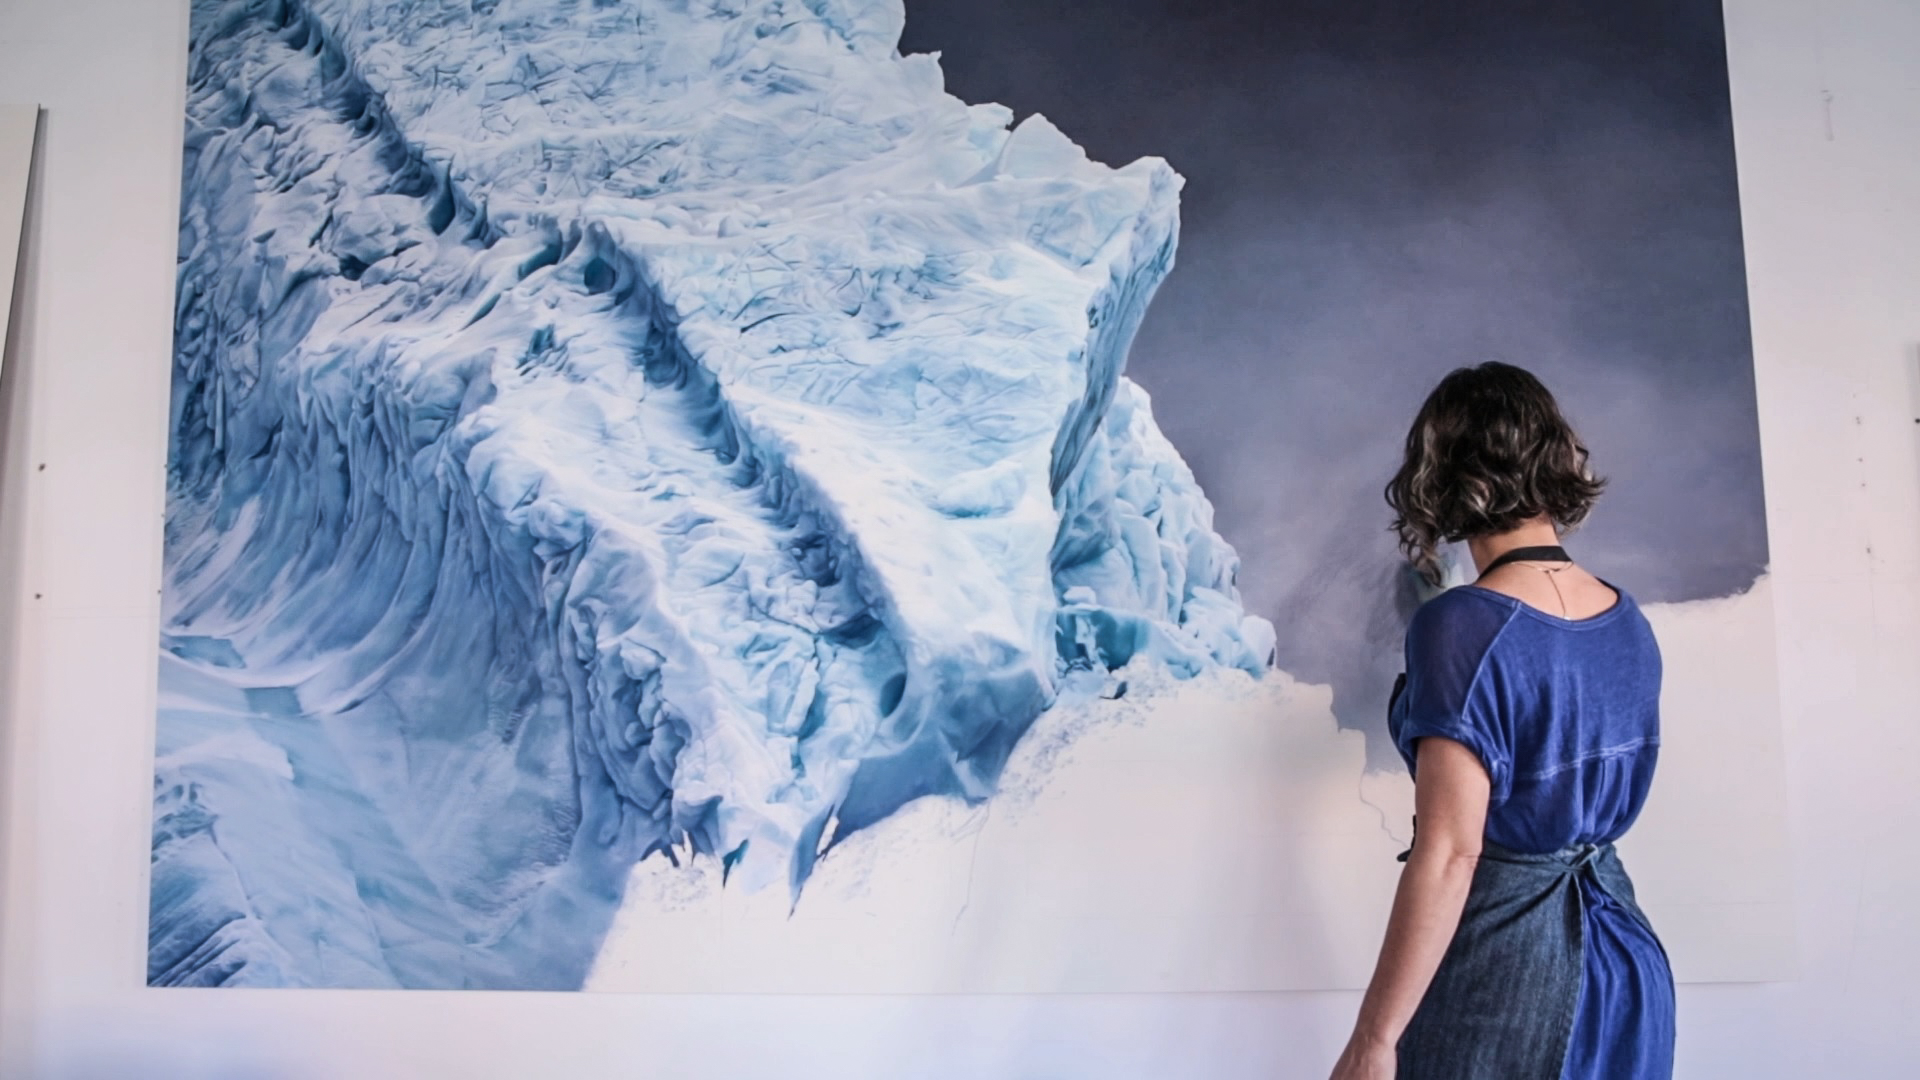 Artist Zaria Forman draws the urgency of climate change